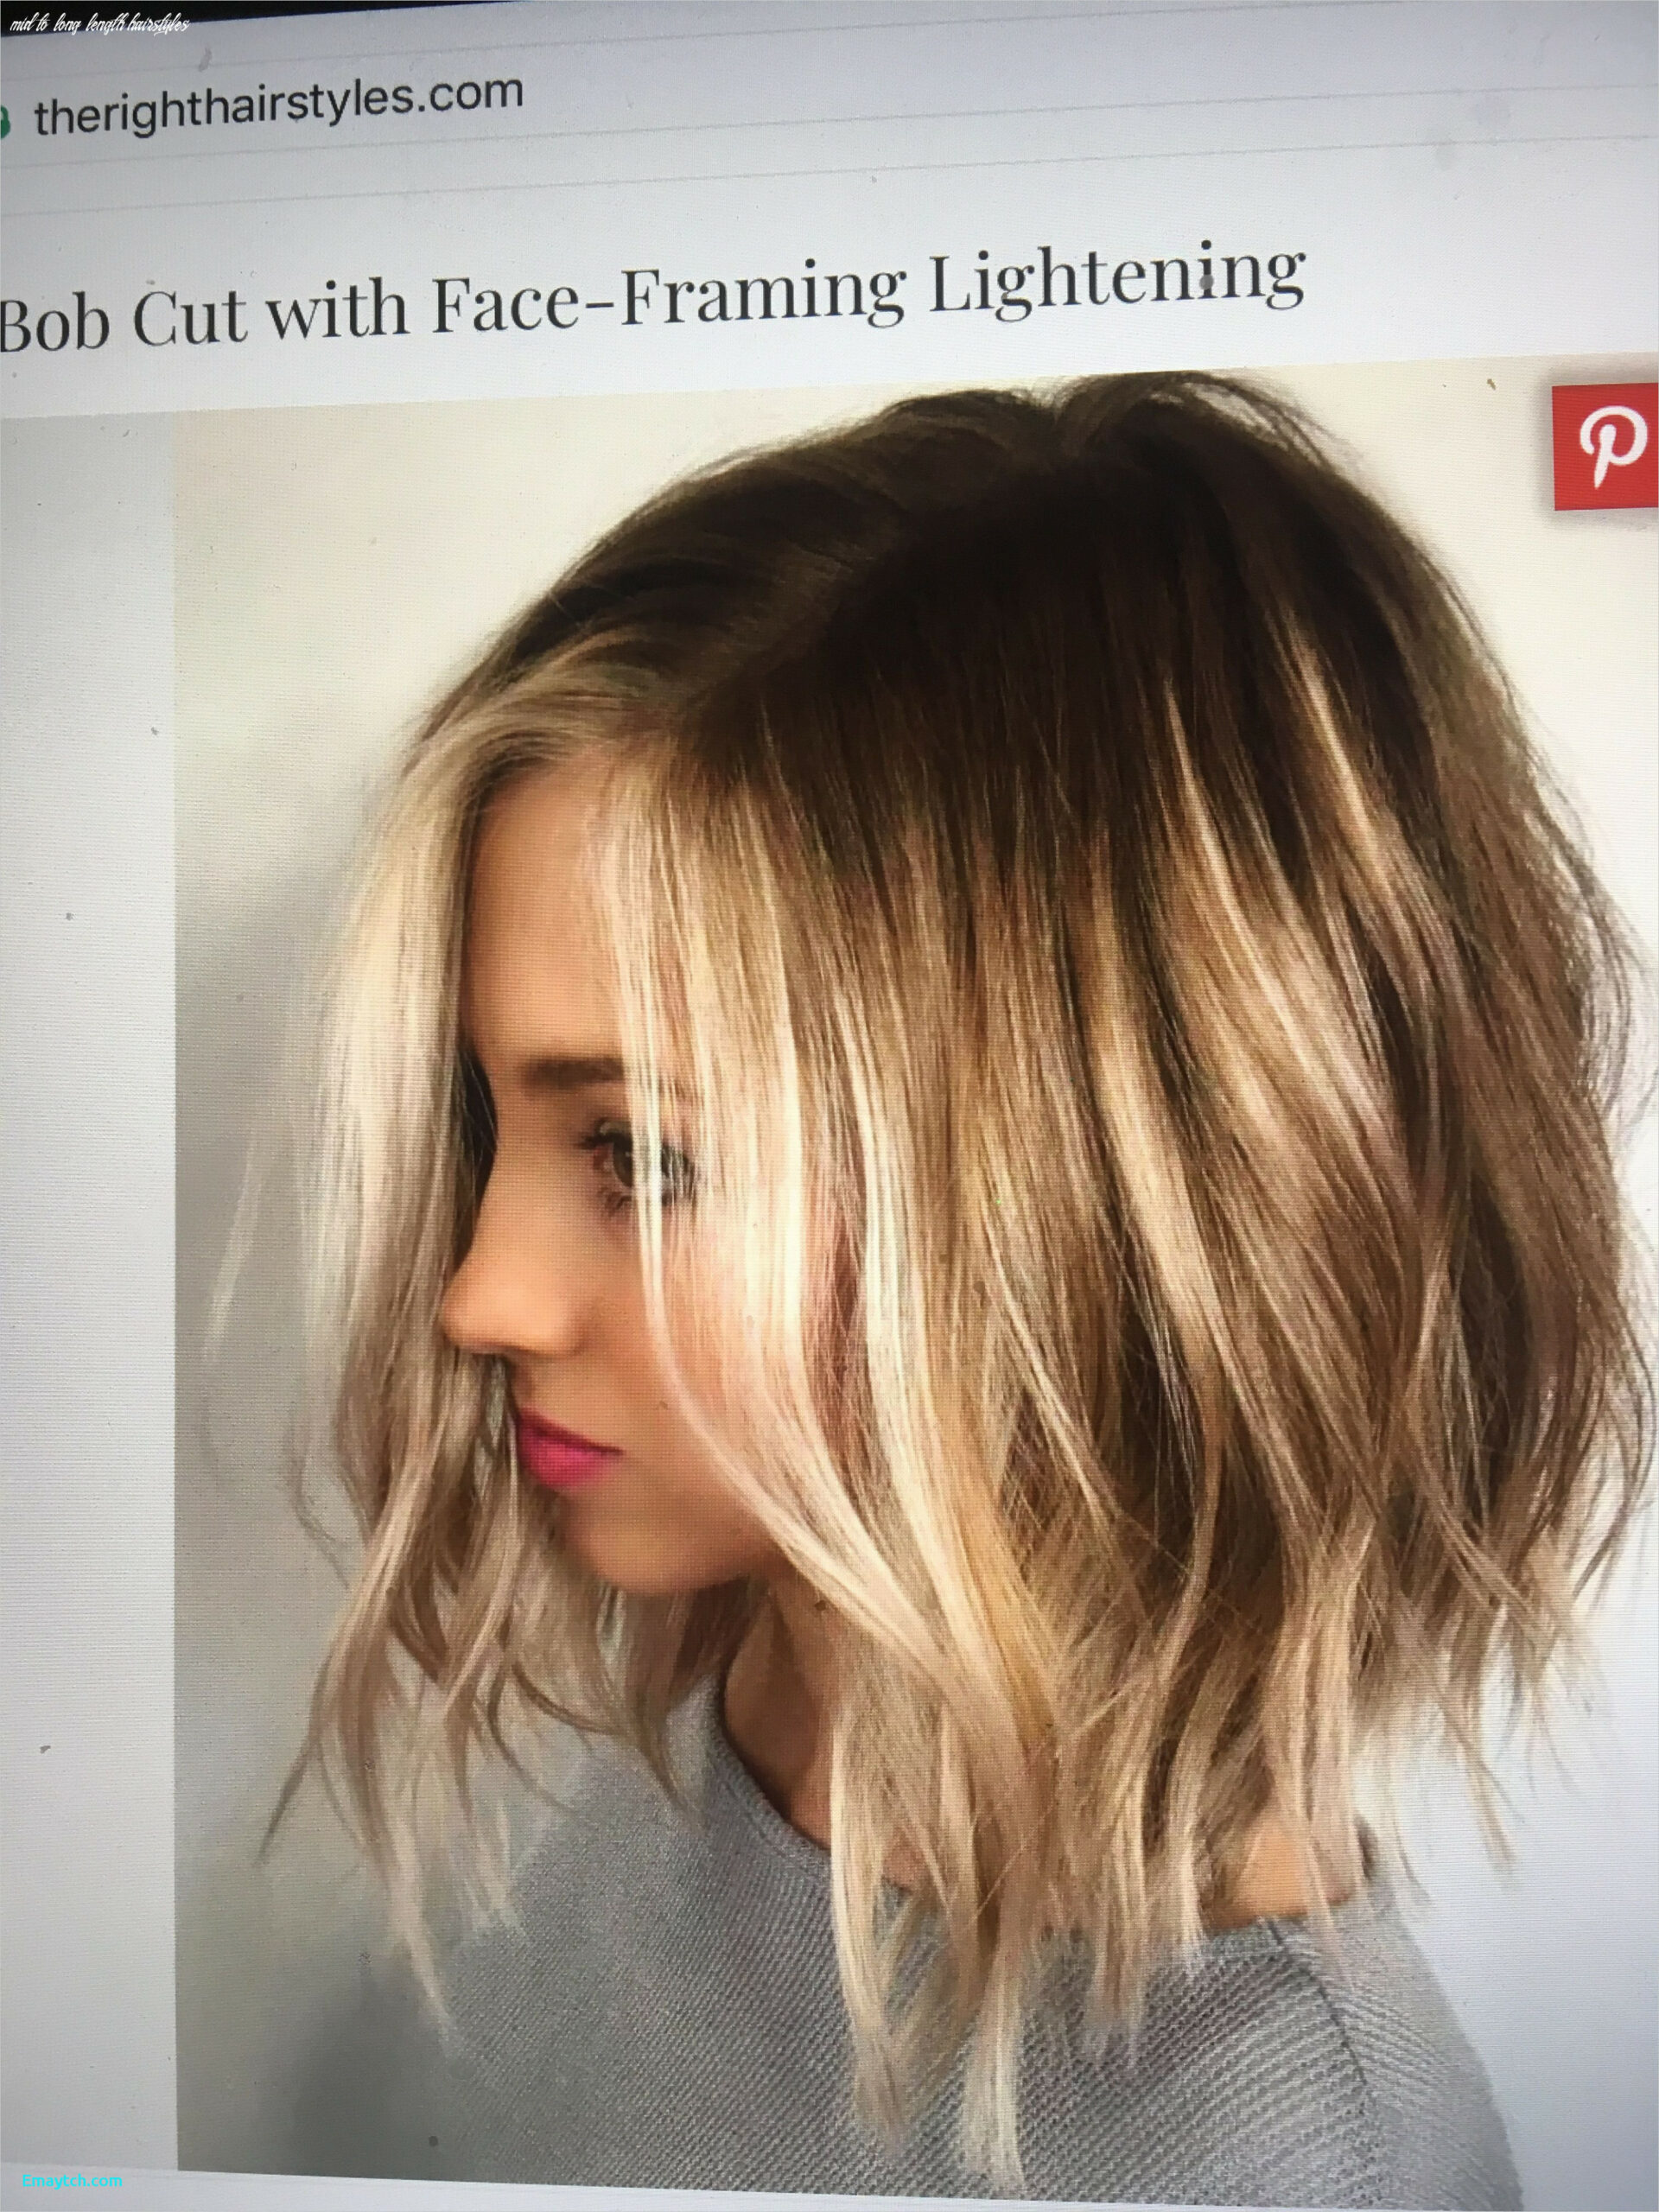 Mid to long length hairstyles awesome top 10 punto medio noticias pics mid to long length hairstyles